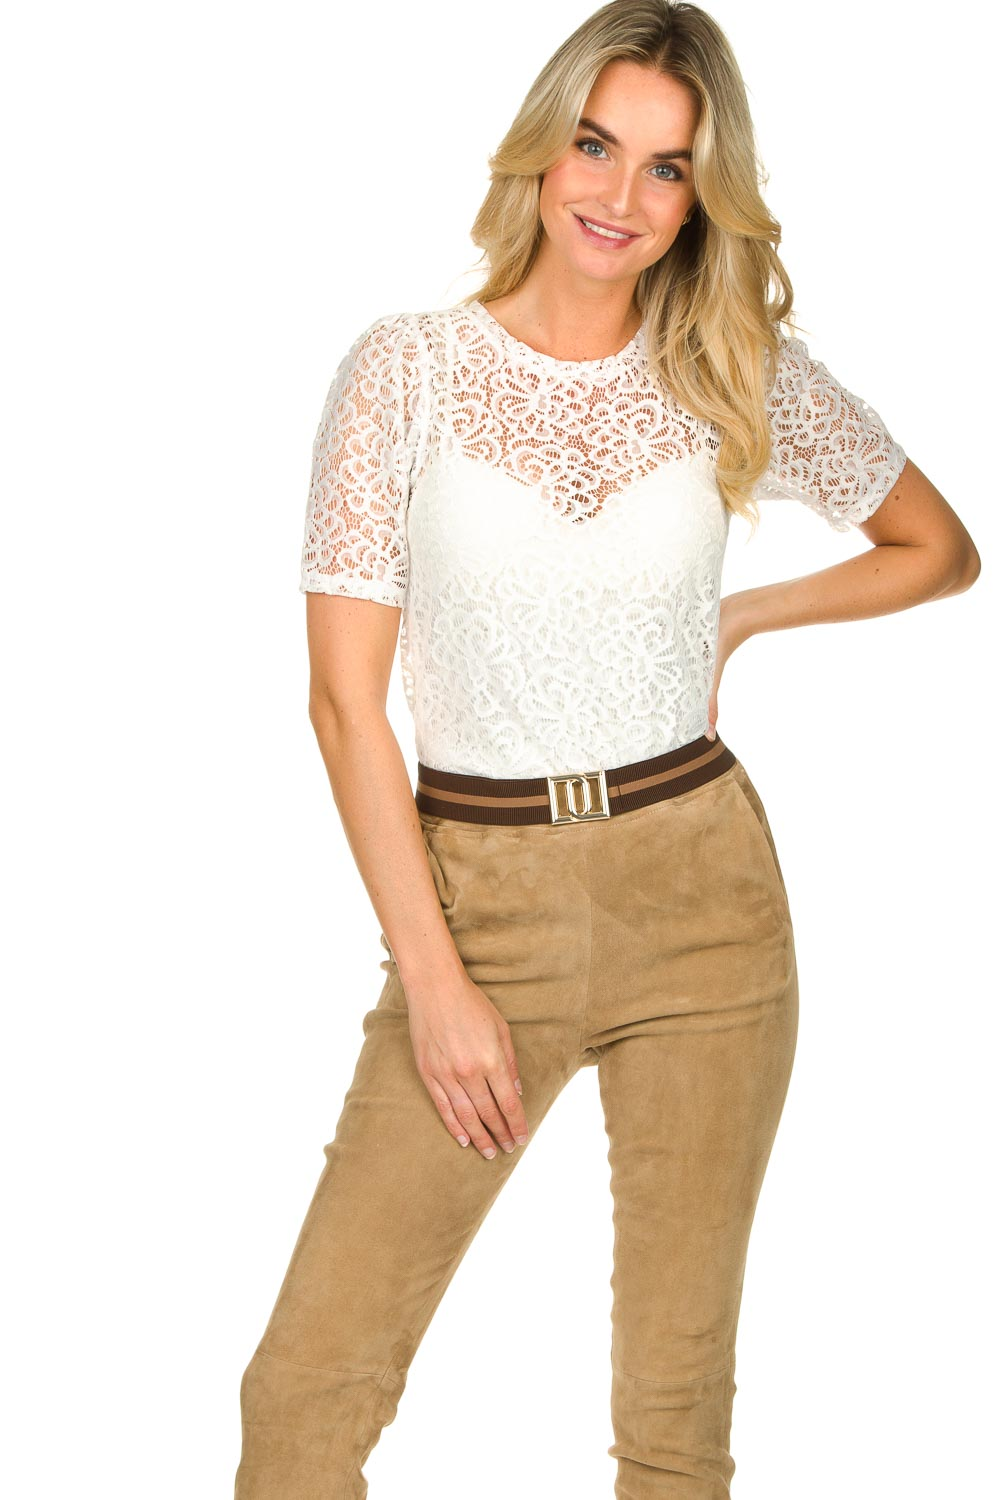 Look Lace top Whitney